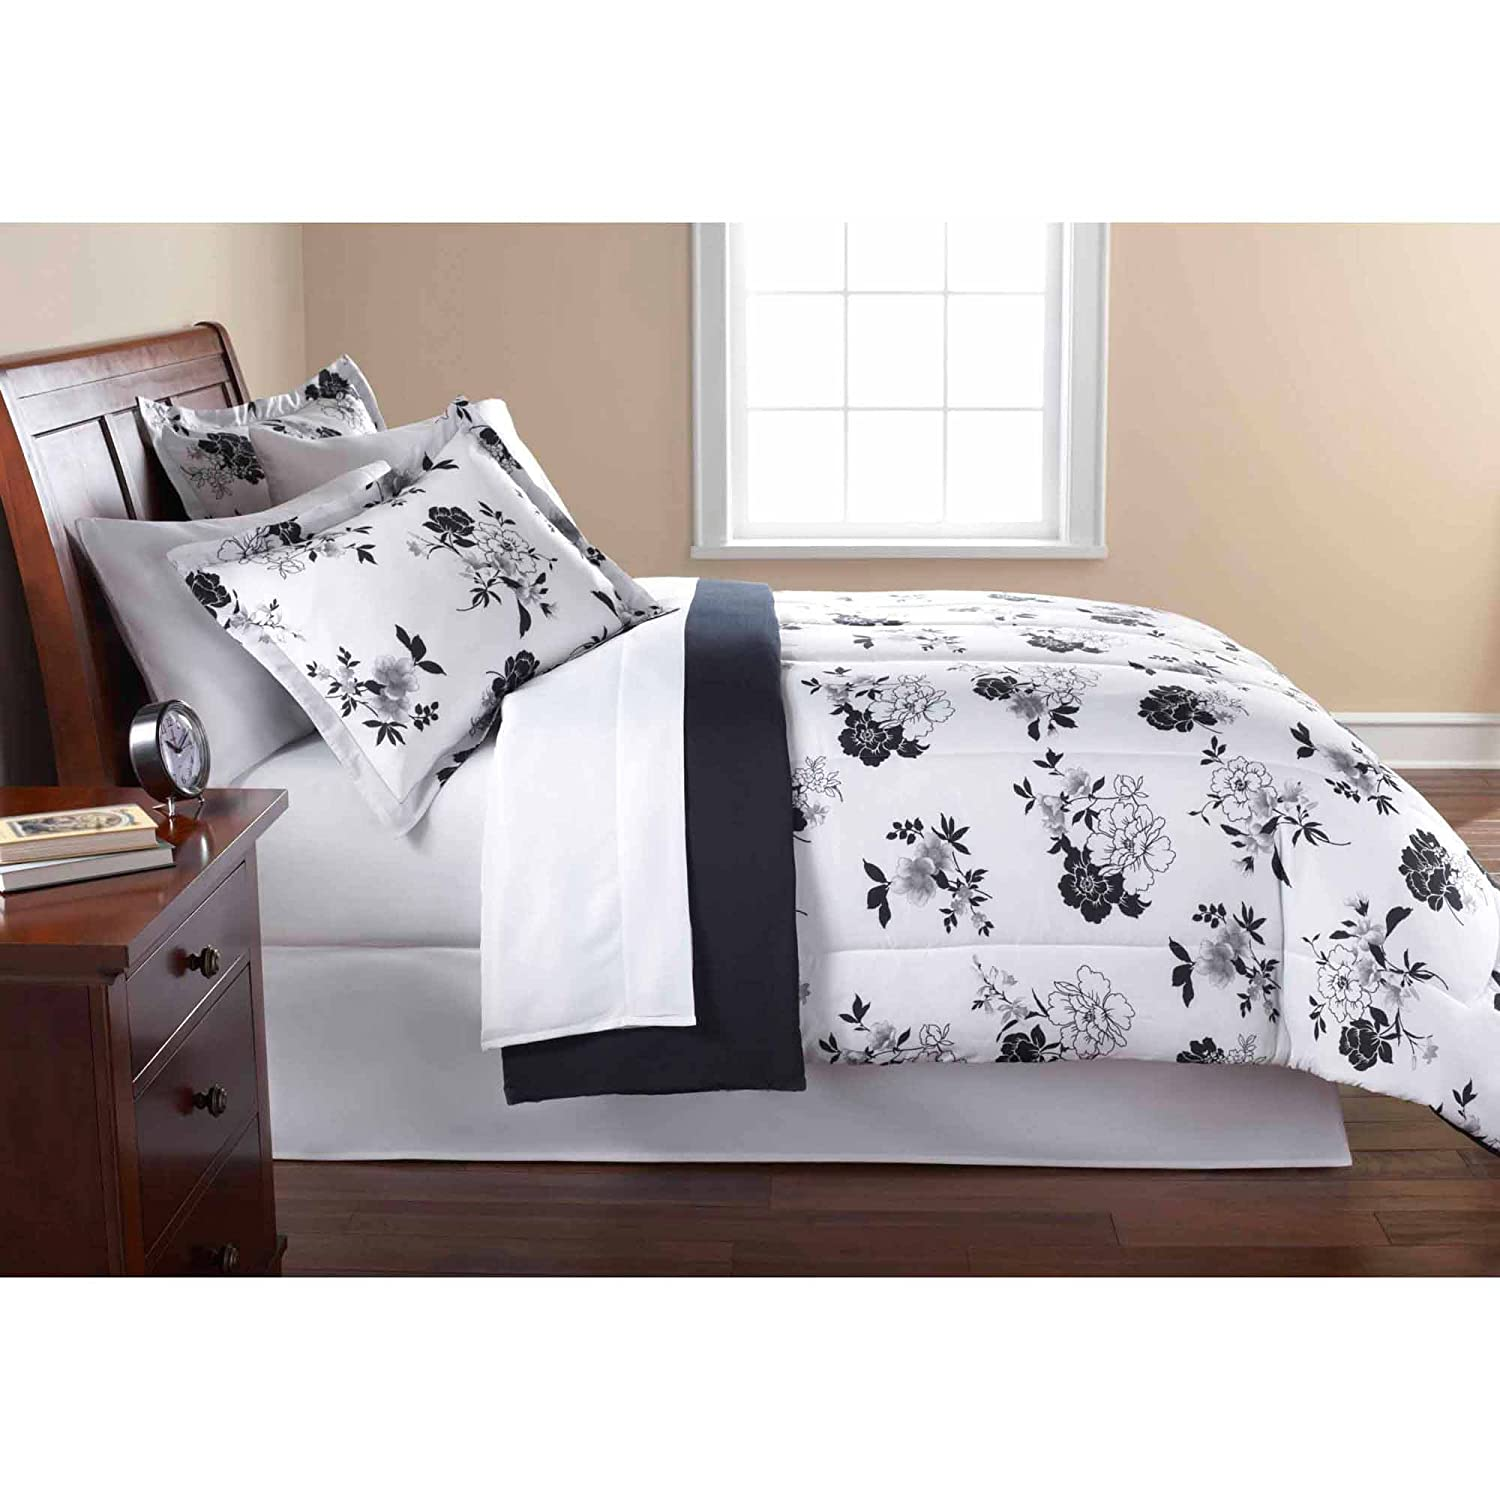 Mainstays 8PC OPP Black White Floral Bed in bag Comforter set Queen